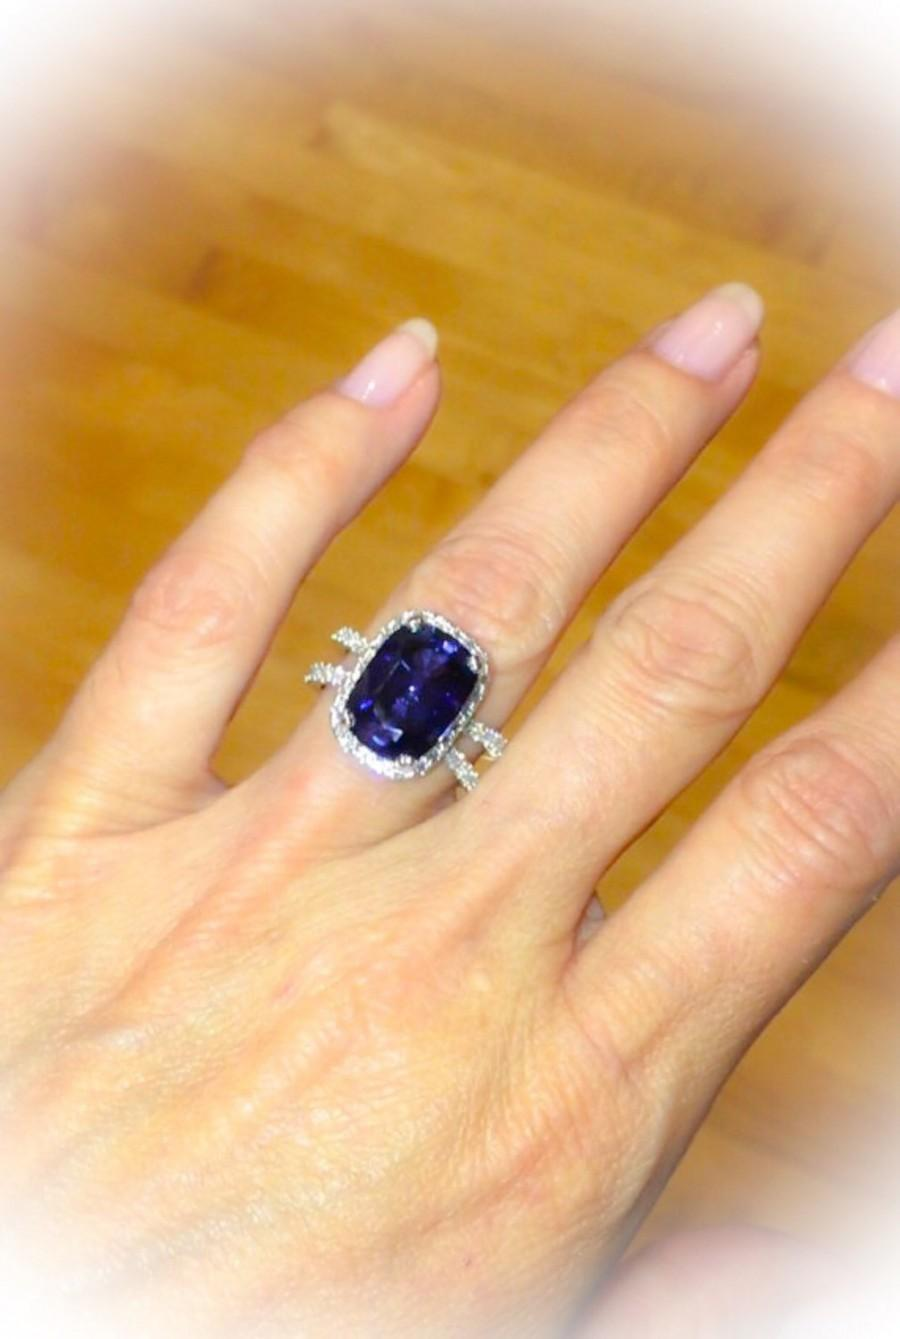 Wedding - Sapphire Halo Engagement Ring 14kt White Gold 13x9 Ceylon Blue Sapphire Cushion Cut Diamonds Split Shank Wedding Ring Pristine Custom Rings